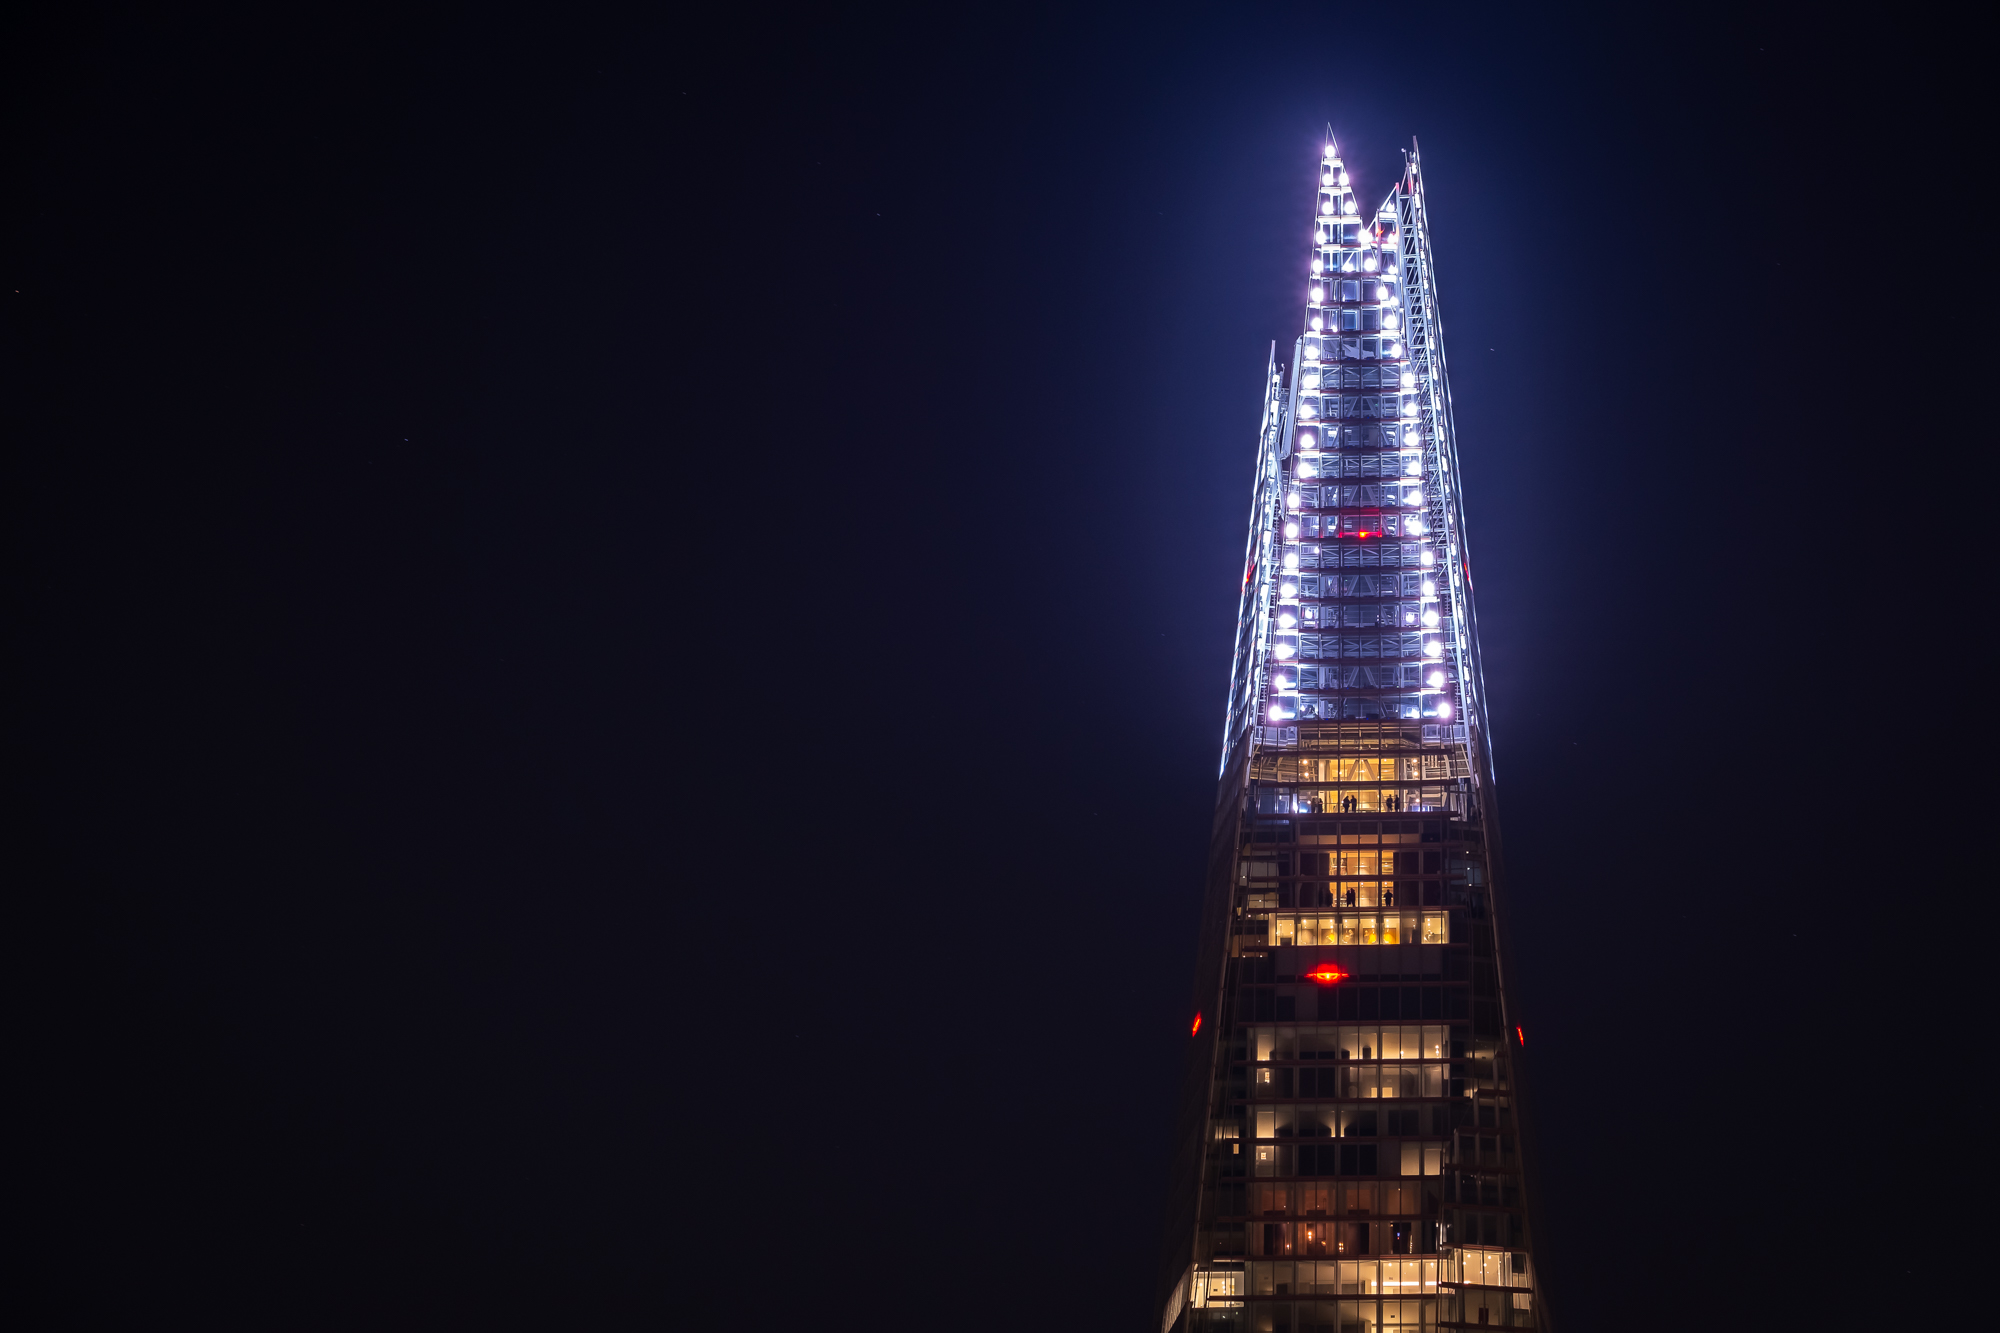 A photo of the Shard Lights in London Taken by Trevor Sherwin